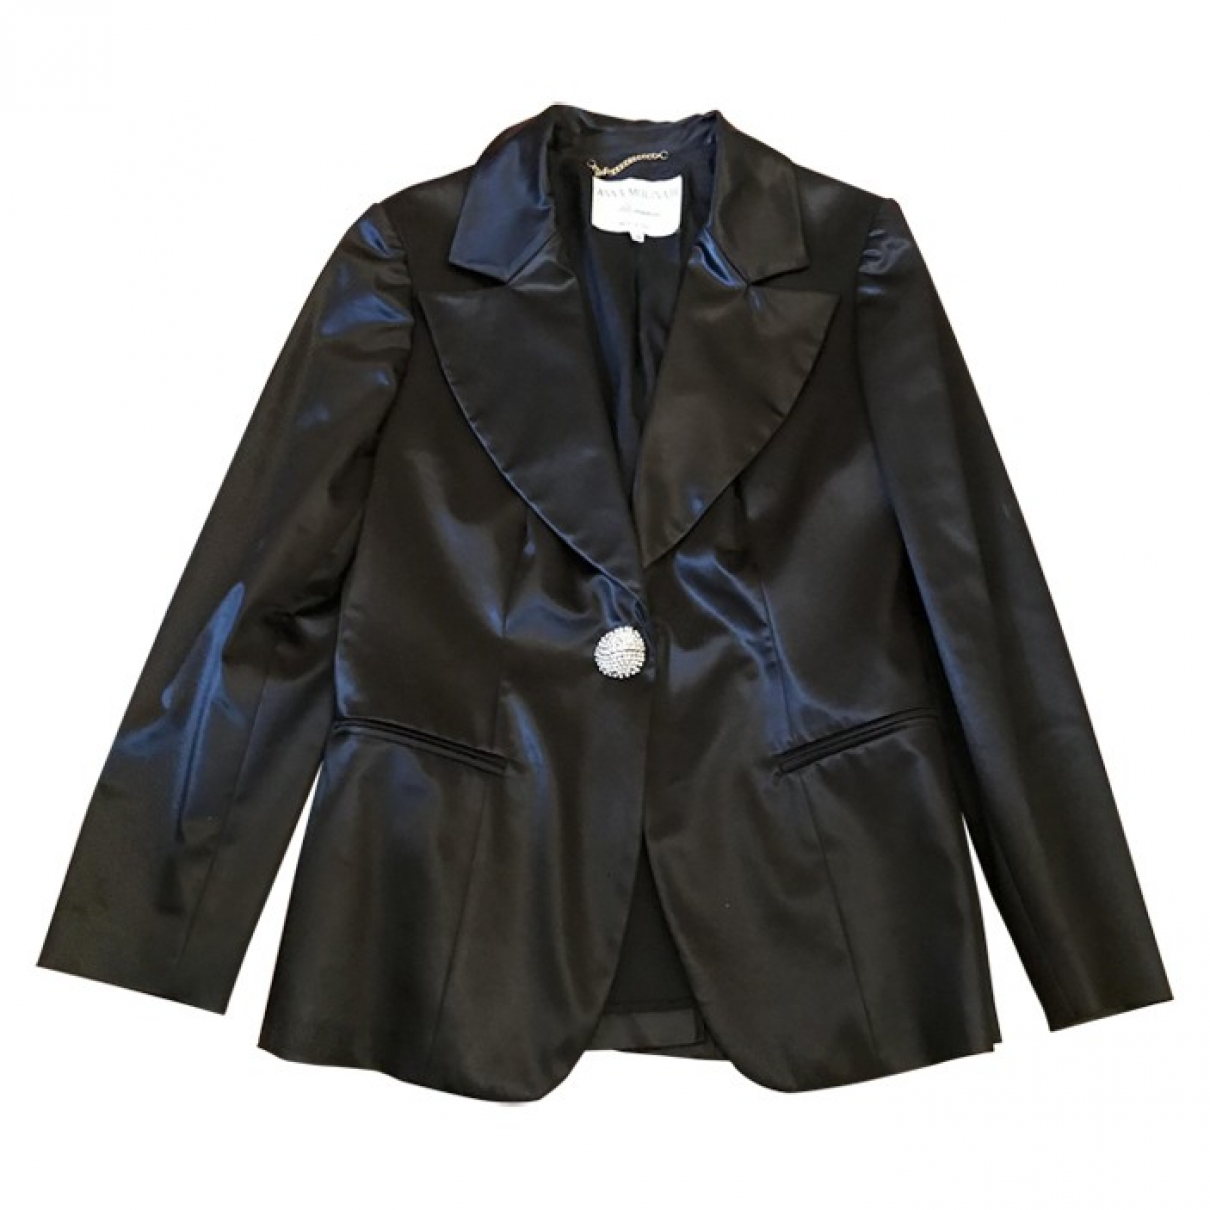 Blumarine \N Black jacket for Women 44 IT